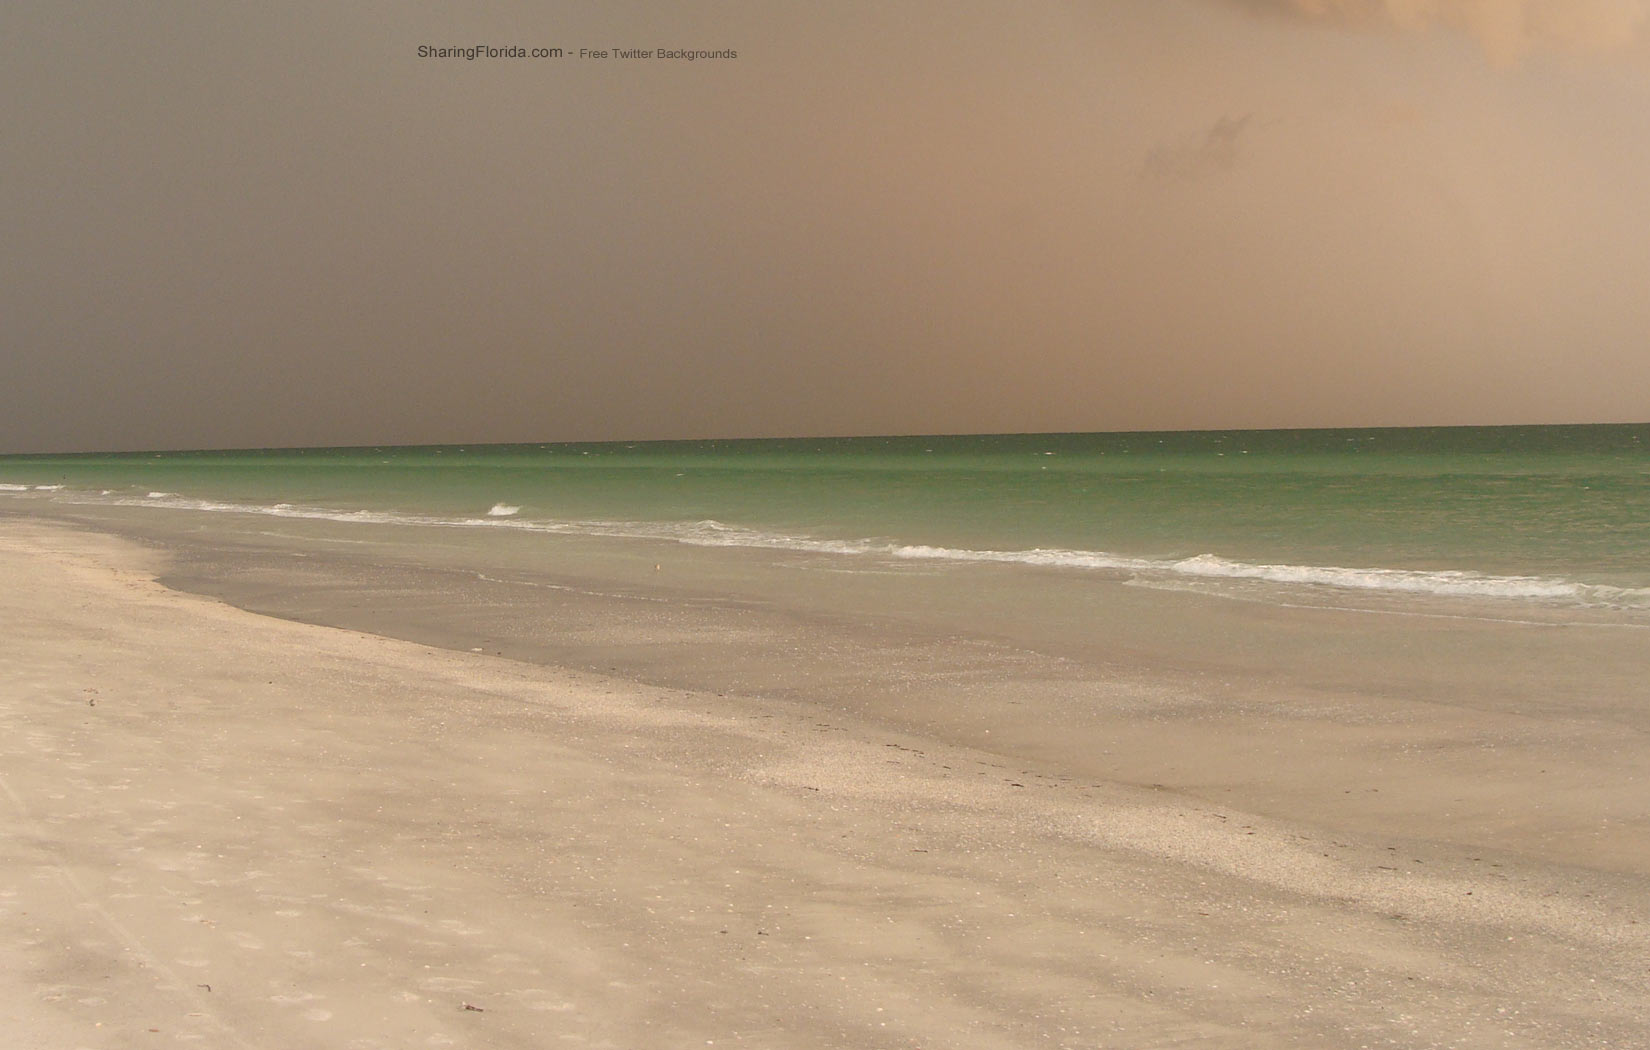 Layouts and Wallaper Backfrounds of Florida Beaches for Twitter 1650x1050